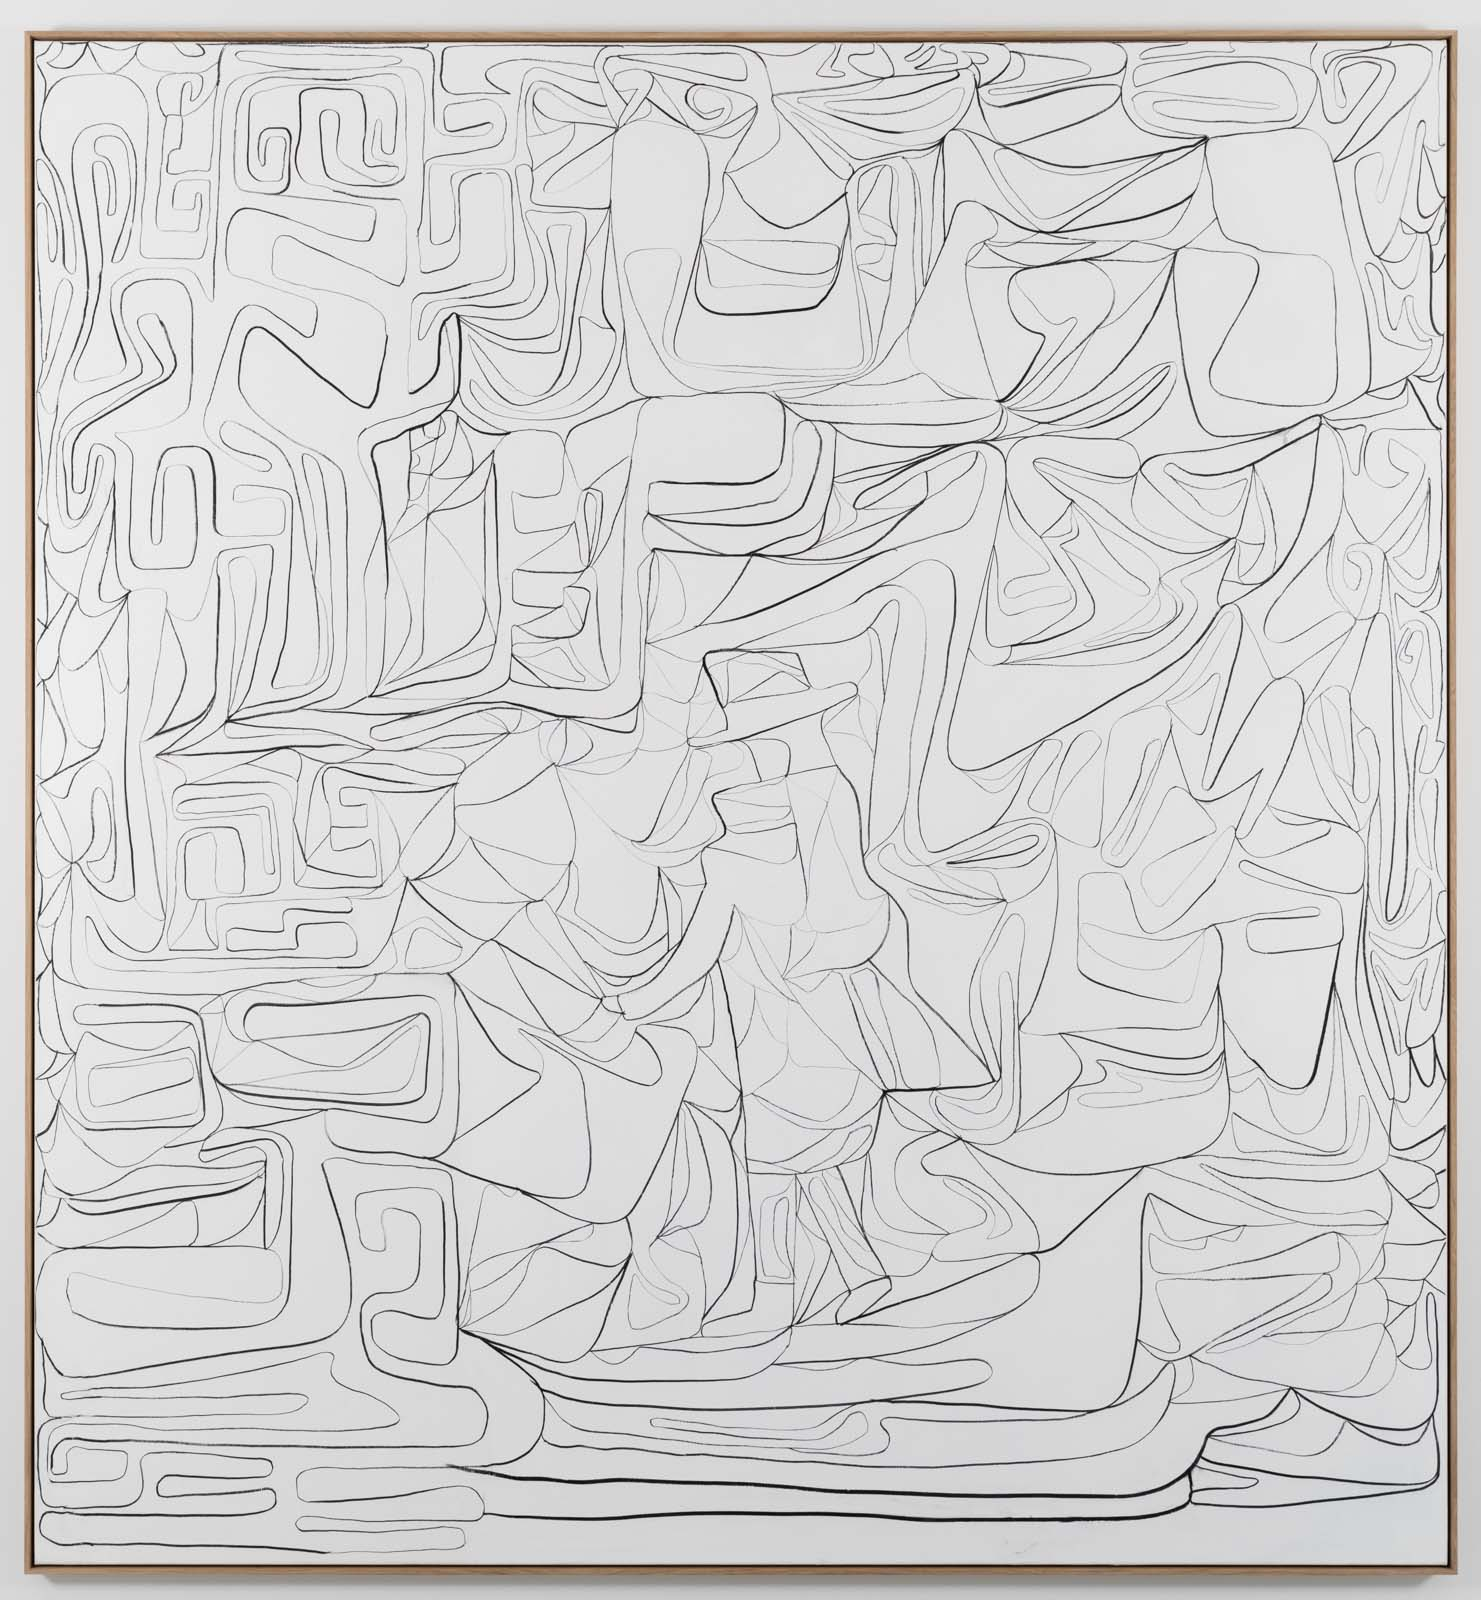 The Inventarium Drawing No. 01, 2018. Charcoal on canvas, 275 x 255 cm